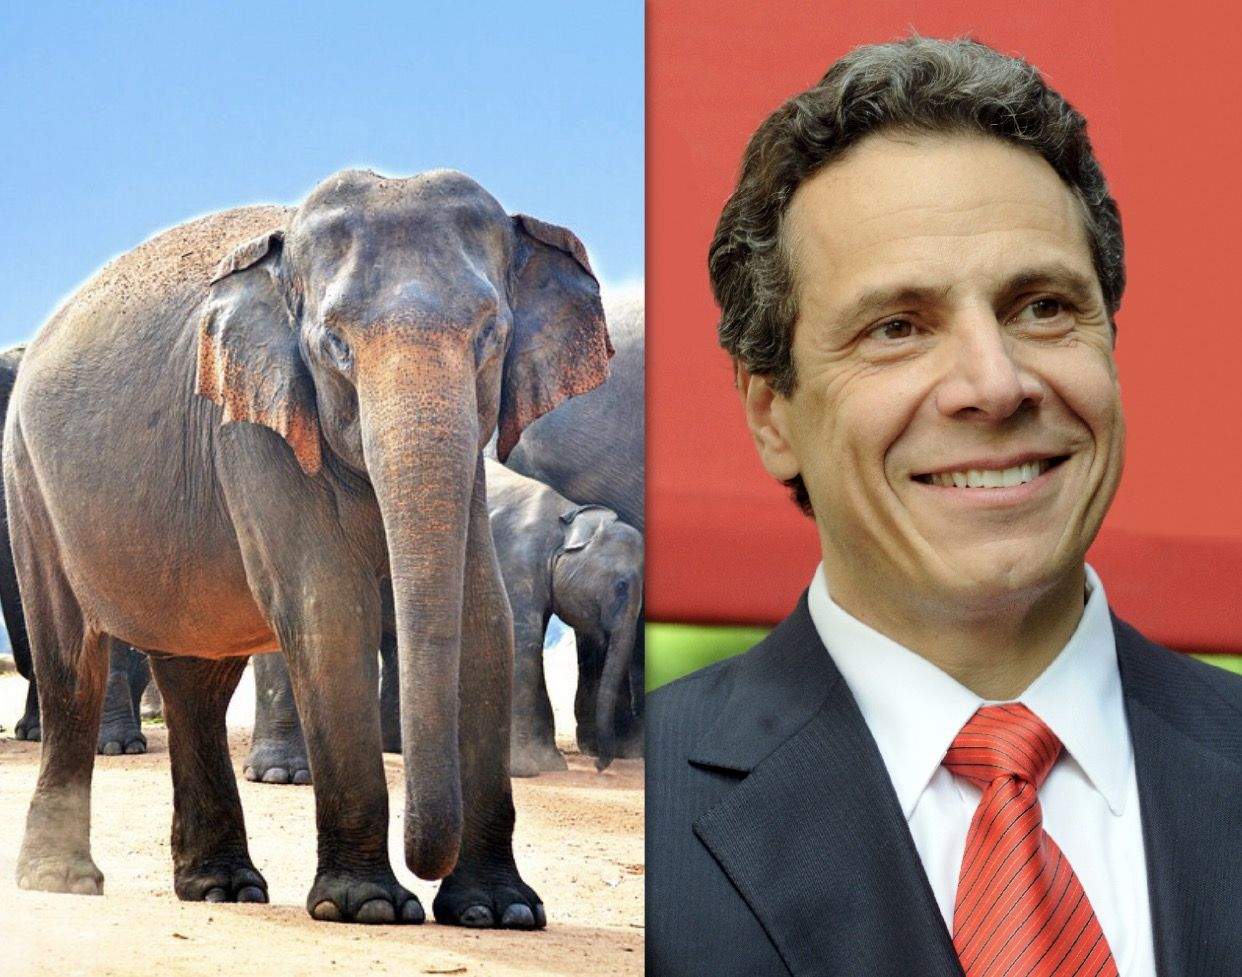 Breaking News Bravo Ny Governor Cuomo Signs The Elephant Protection Act To Safeguard Elephants From Exploitation In Ent Animals Of The World Animals Elephant